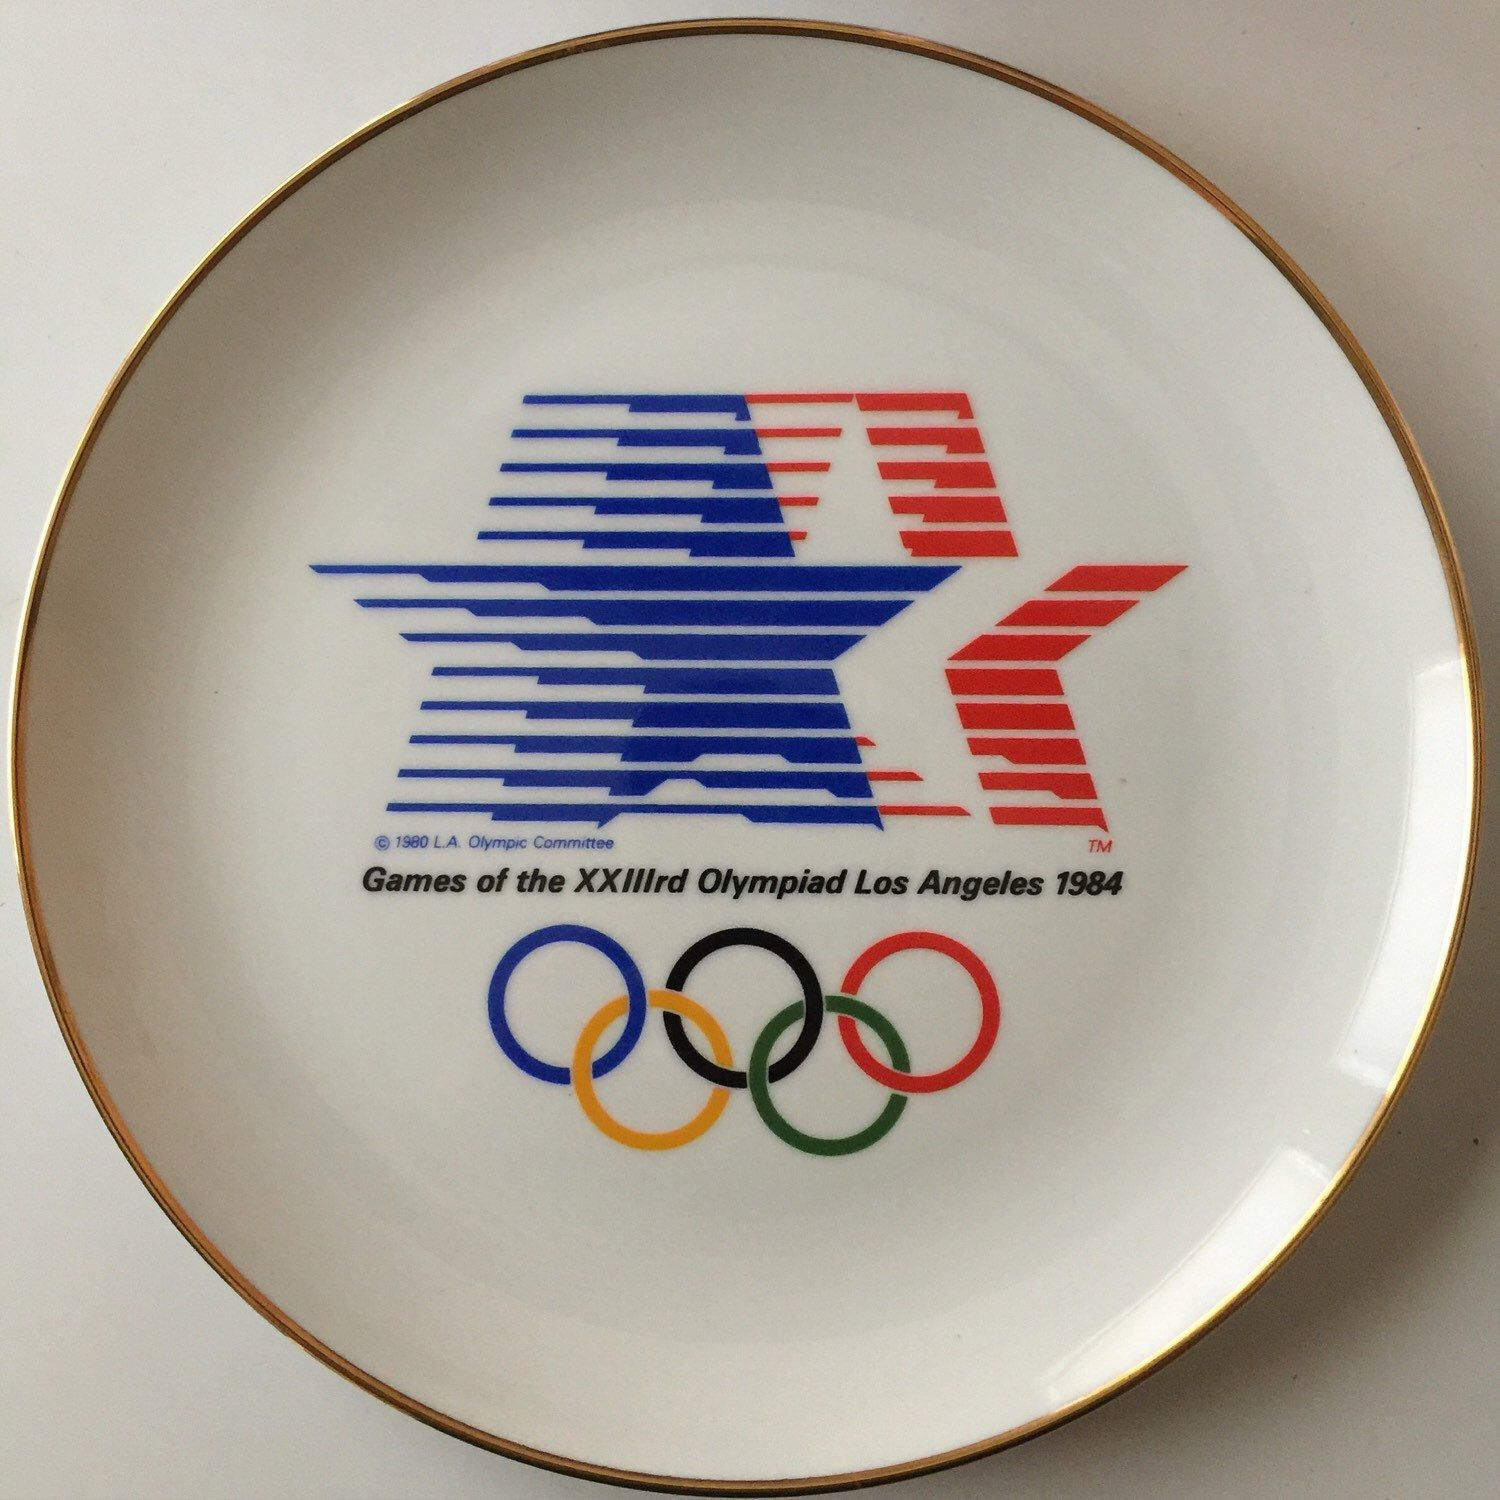 Pin by RetroBob on Oil Capital Vintage Olympic games